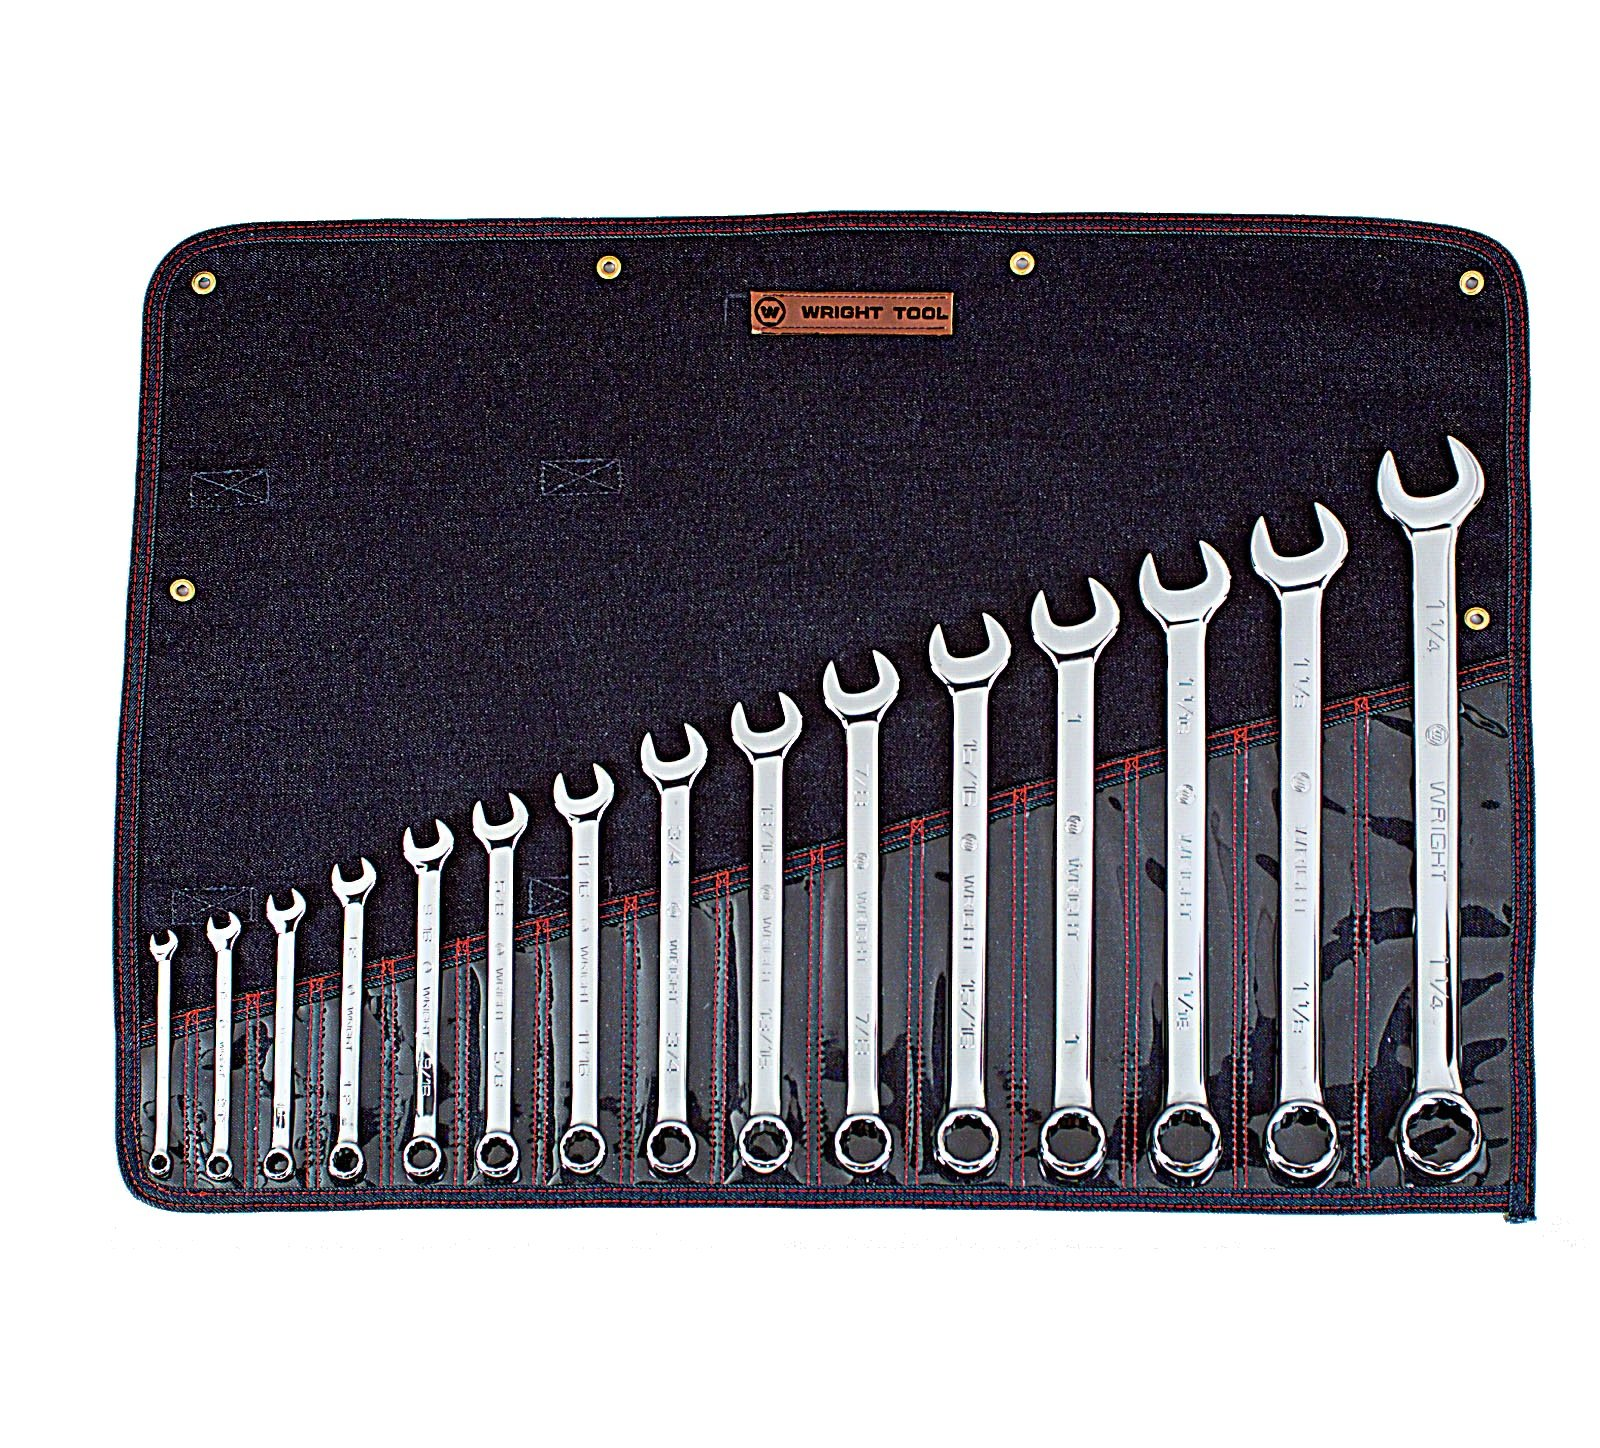 Wright Tool 915 Full Polish 12 Point Combination Wrench Set 5/16'' - 1-1/4'' (15-Piece) by Wright Tool